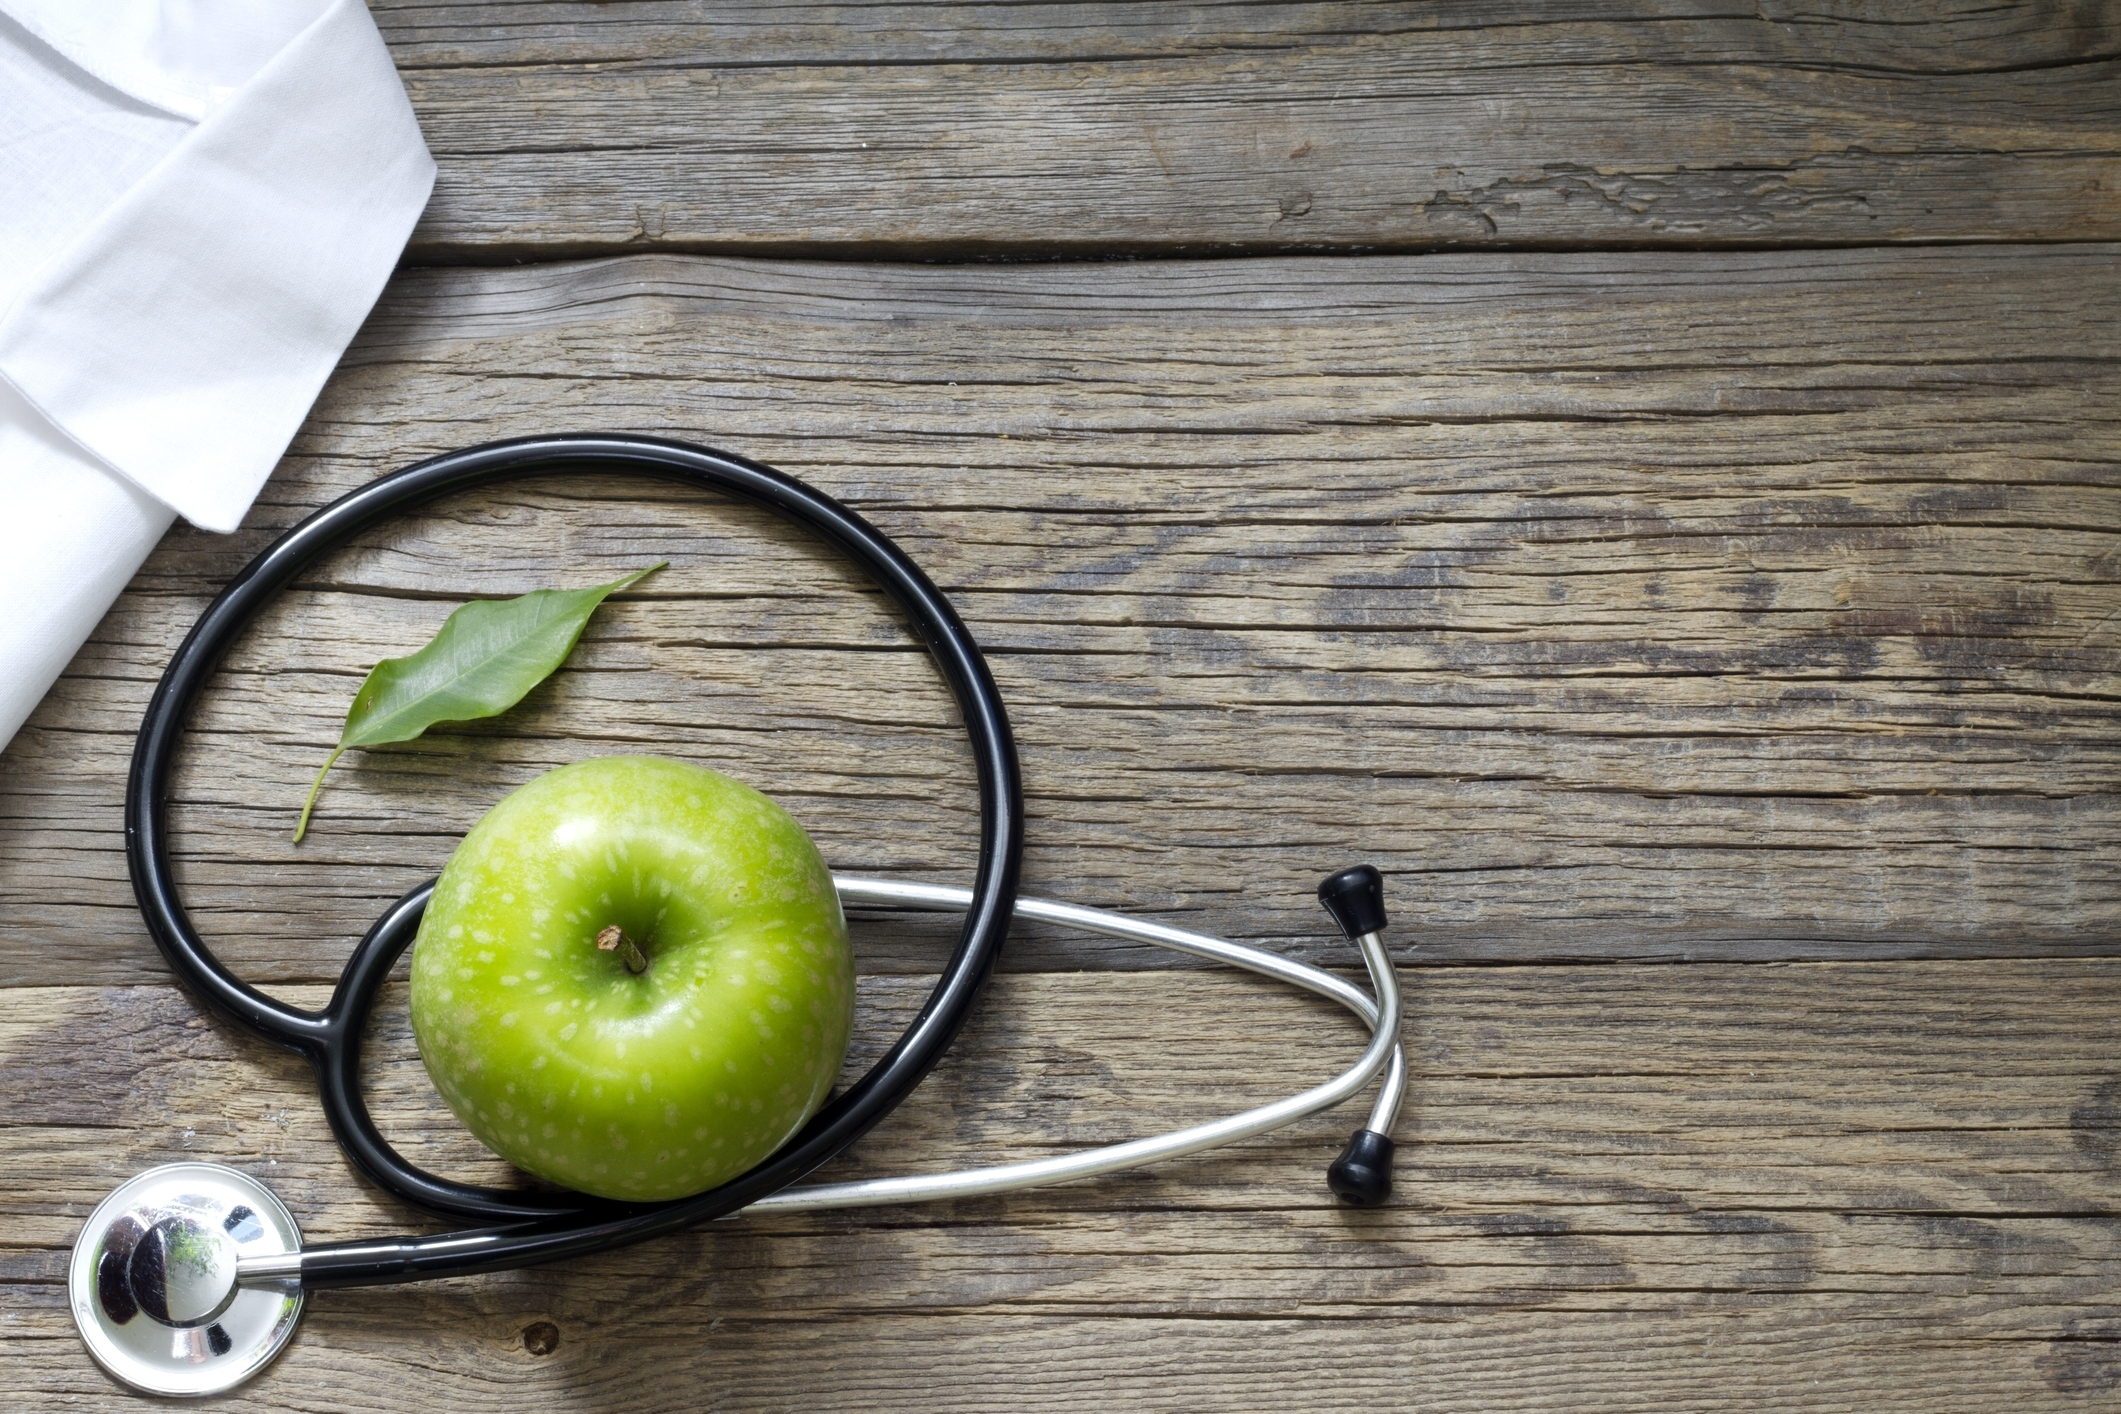 apple and stethoscope.jpg